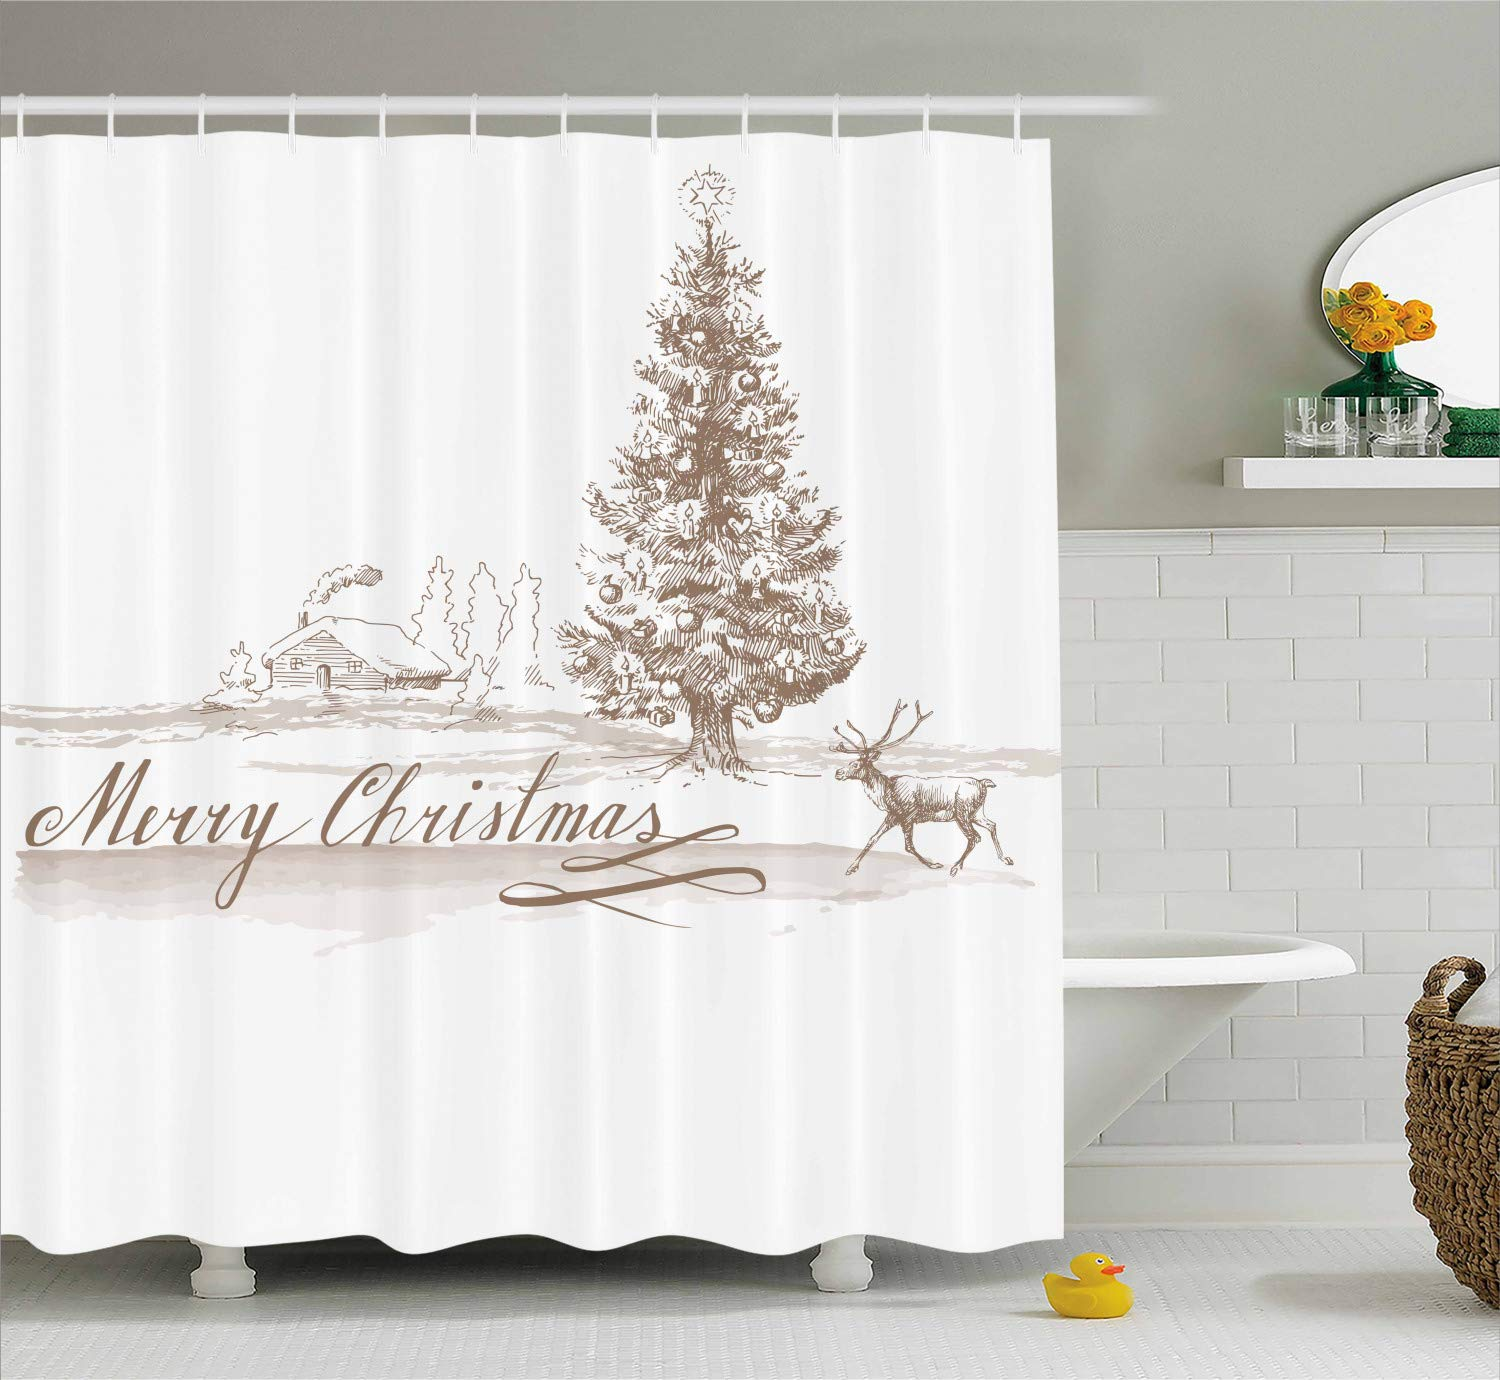 Christmas Bathroom Curtains.Ambesonne Christmas Shower Curtain Romantic Vintage New Year Scenery With Reindeer Tree And Star Ancient Design Image Cloth Fabric Bathroom Decor